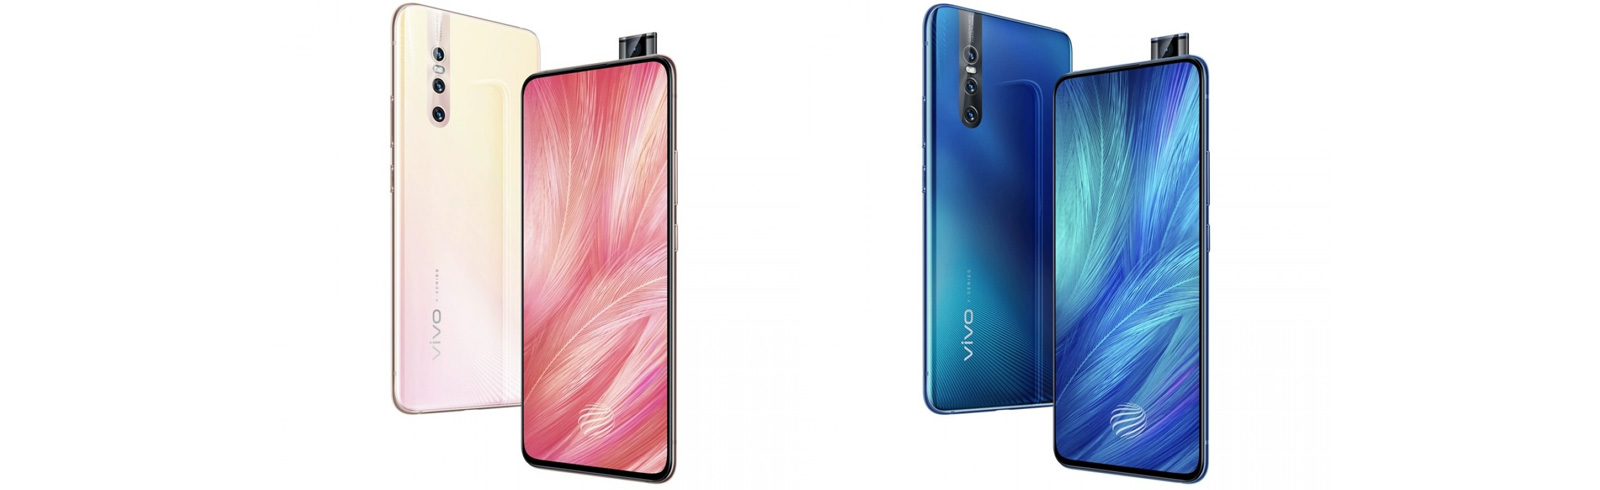 Vivo X27 is announced with a pop-up front camera and three rear shooters